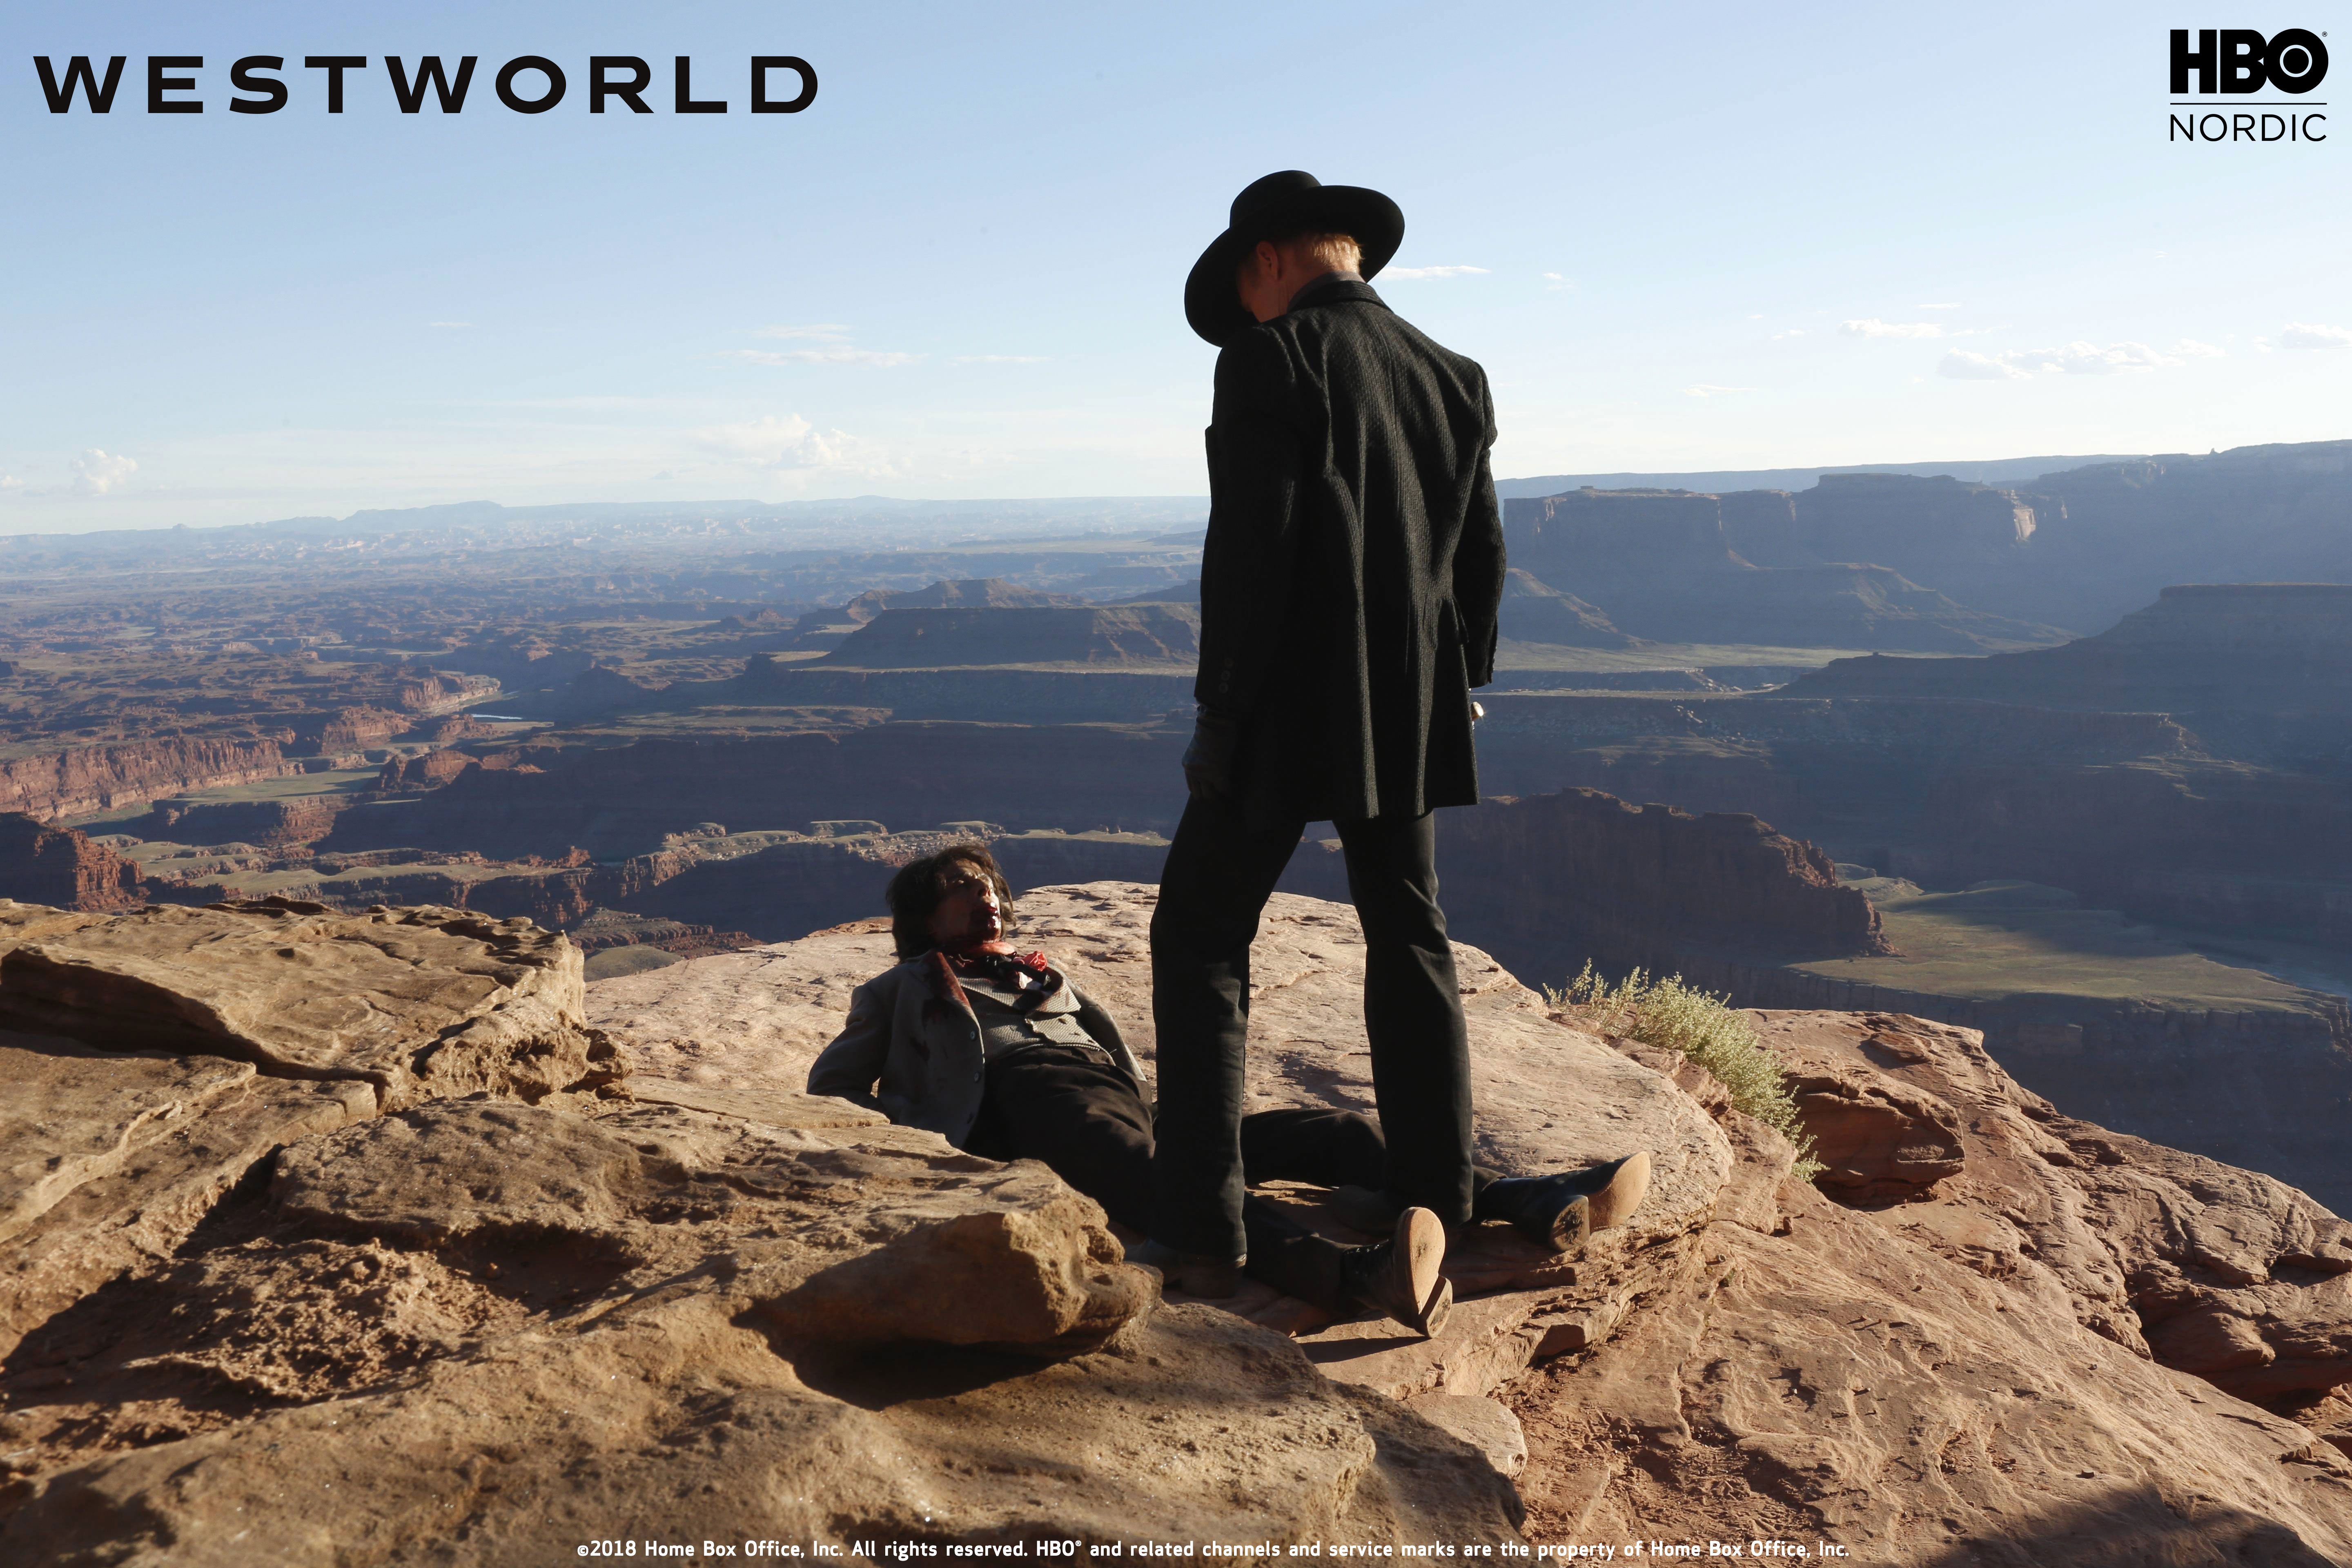 The Man in Black Westworld HBO